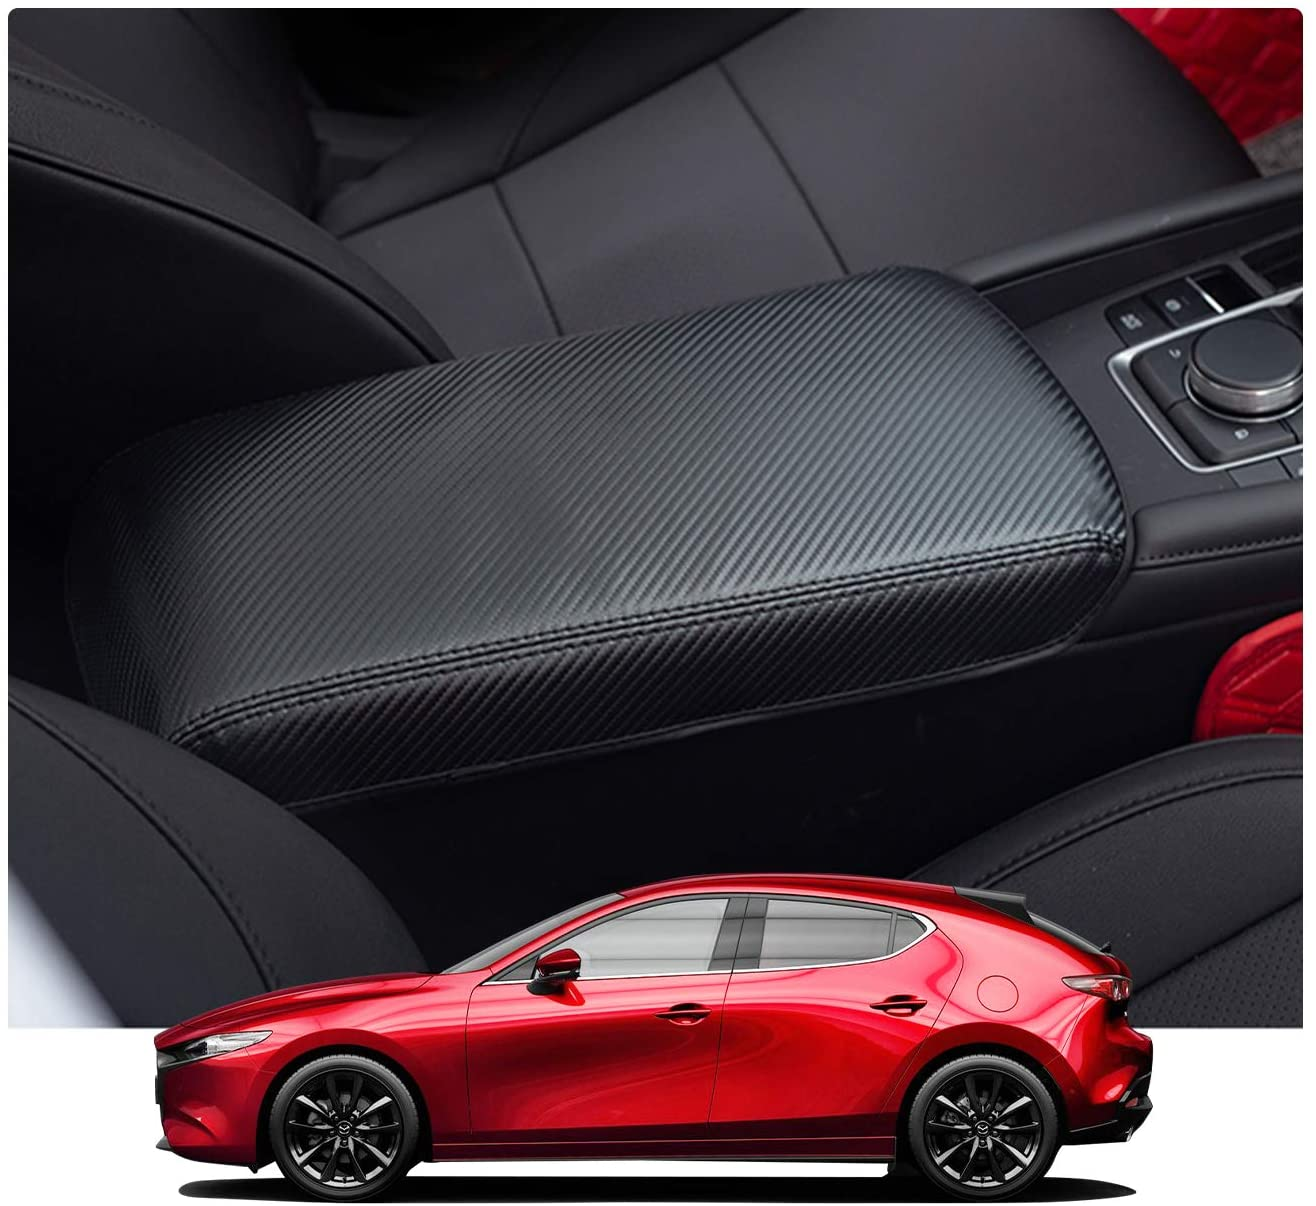 YEE PIN Car Center Armrest Cover Saver Console Lid Cover Fit for Mazda 3 Angkeira 4th 2019 Central Console Armrest Box Scratch Resistance (Black)